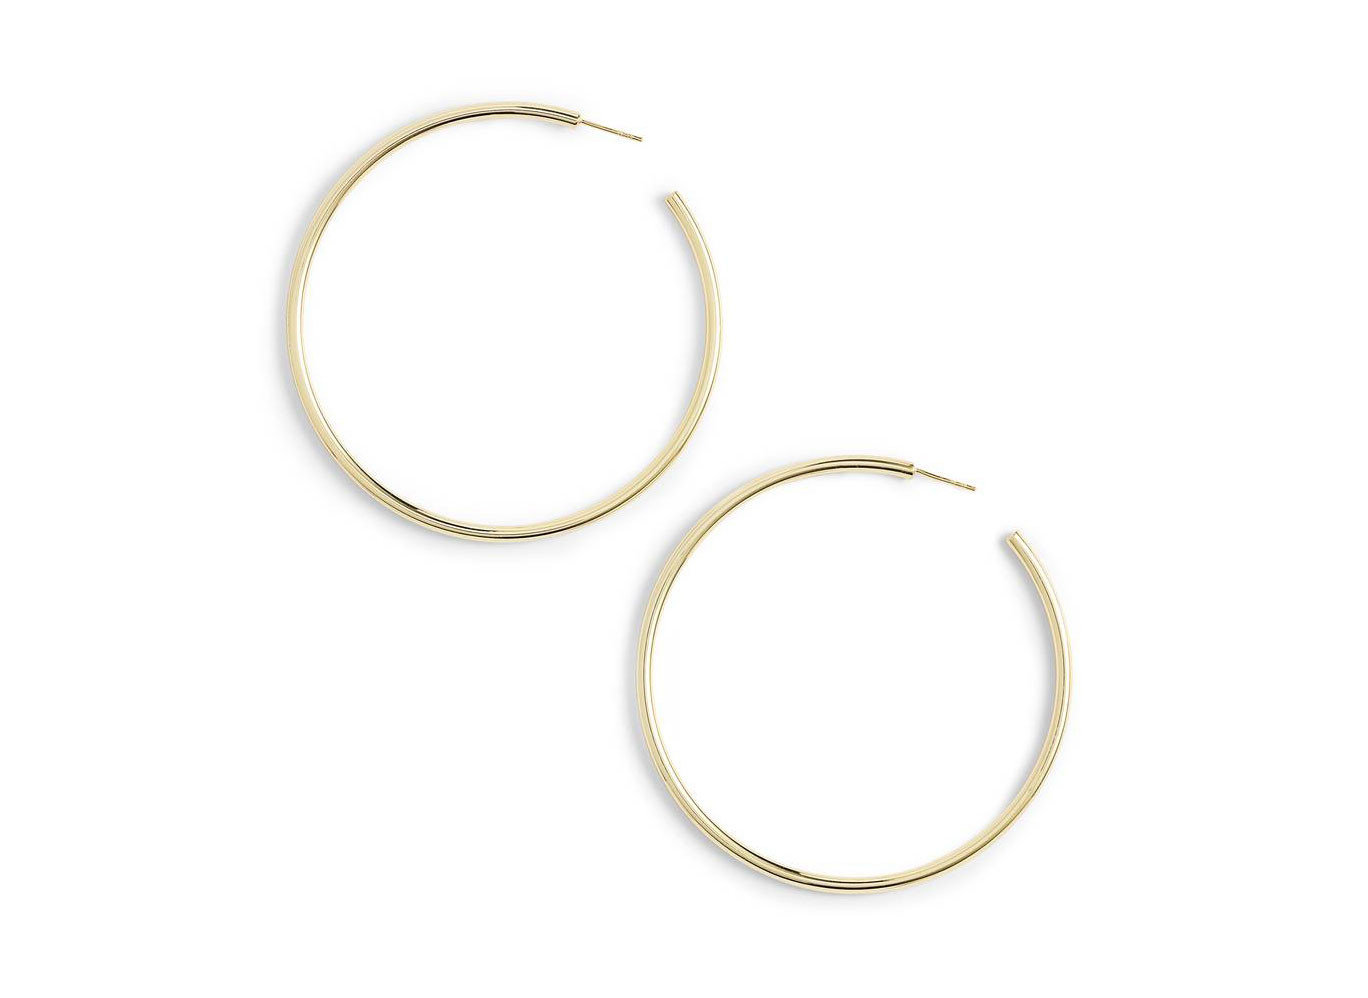 Celebs Style + Design Travel Shop earrings fashion accessory jewellery body jewelry silver material metal circle product design jewelry making bangle